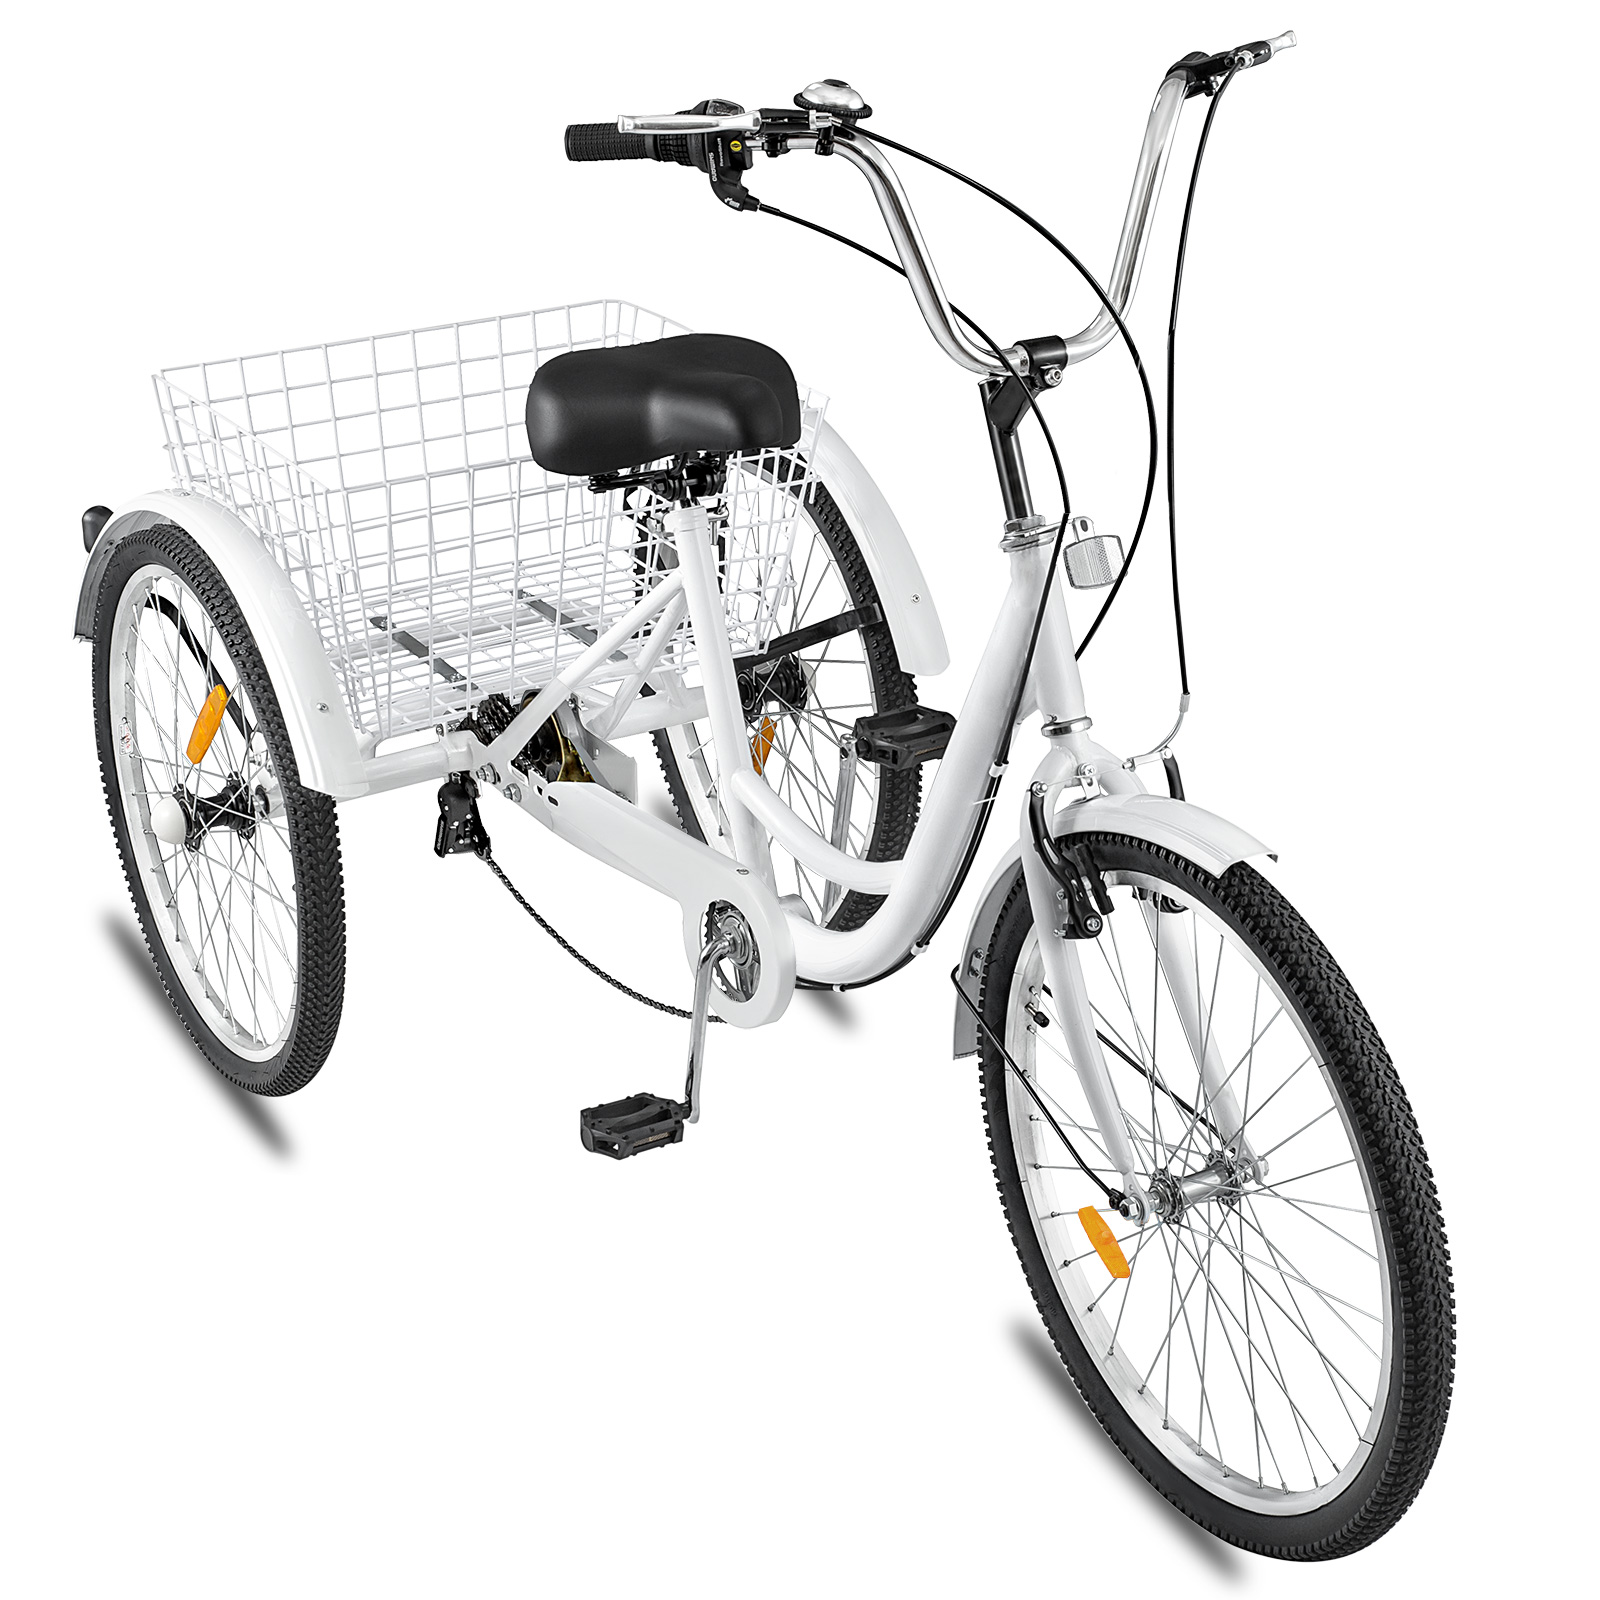 20-24-26-034-Adult-Tricycle-1-7-Speed-3-Wheel-Large-Basket-For-Shopping-Optional thumbnail 333